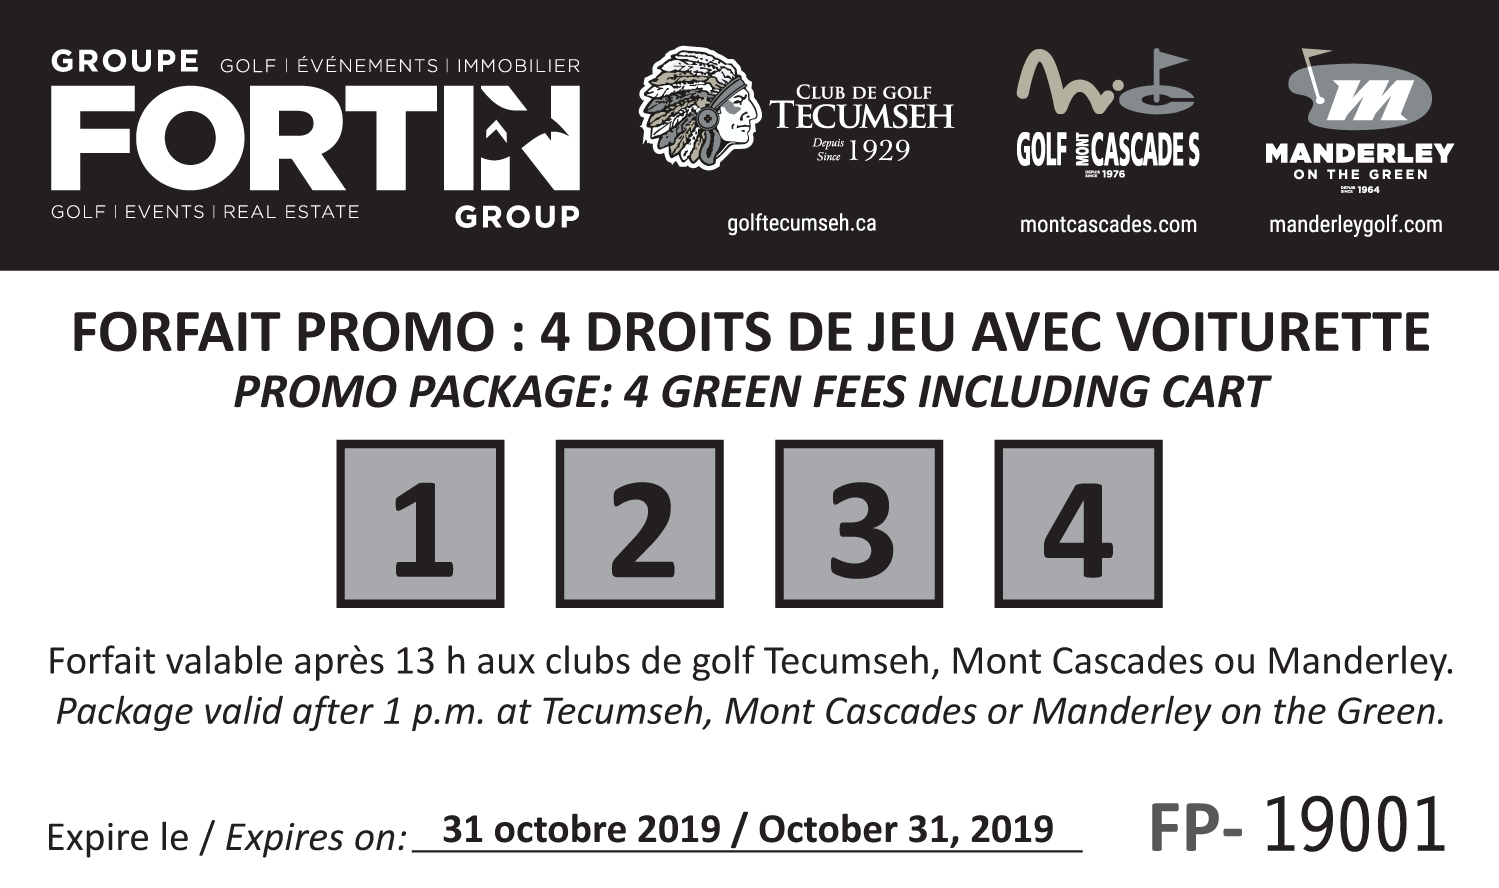 PROMO #1 – 4 Green Fees including Cart (after 1pm)